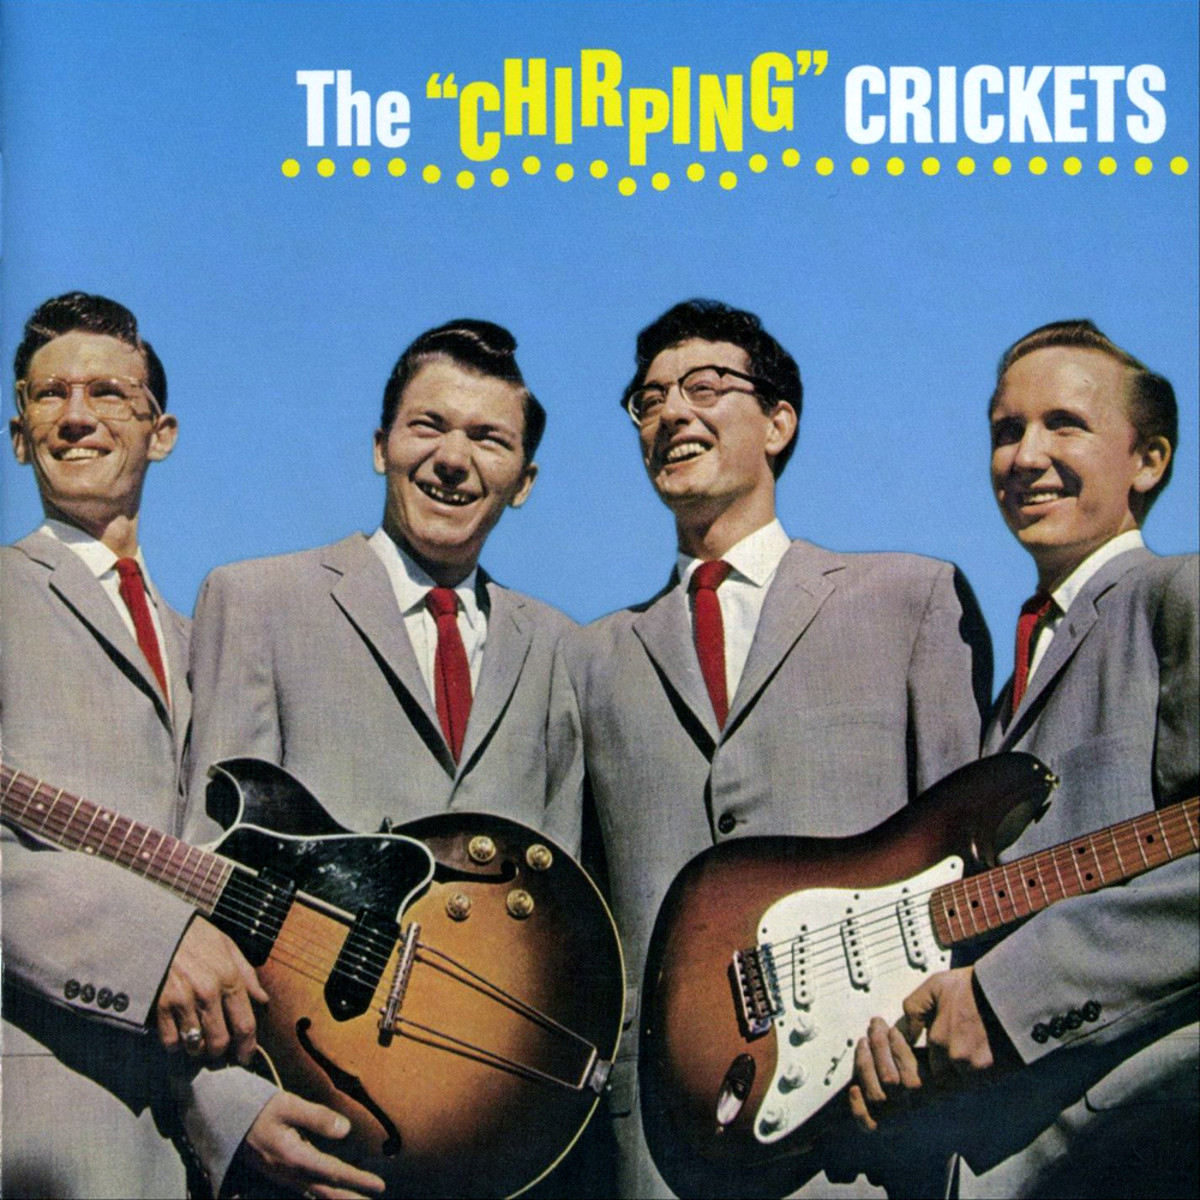 Buddy Holly (second from right)